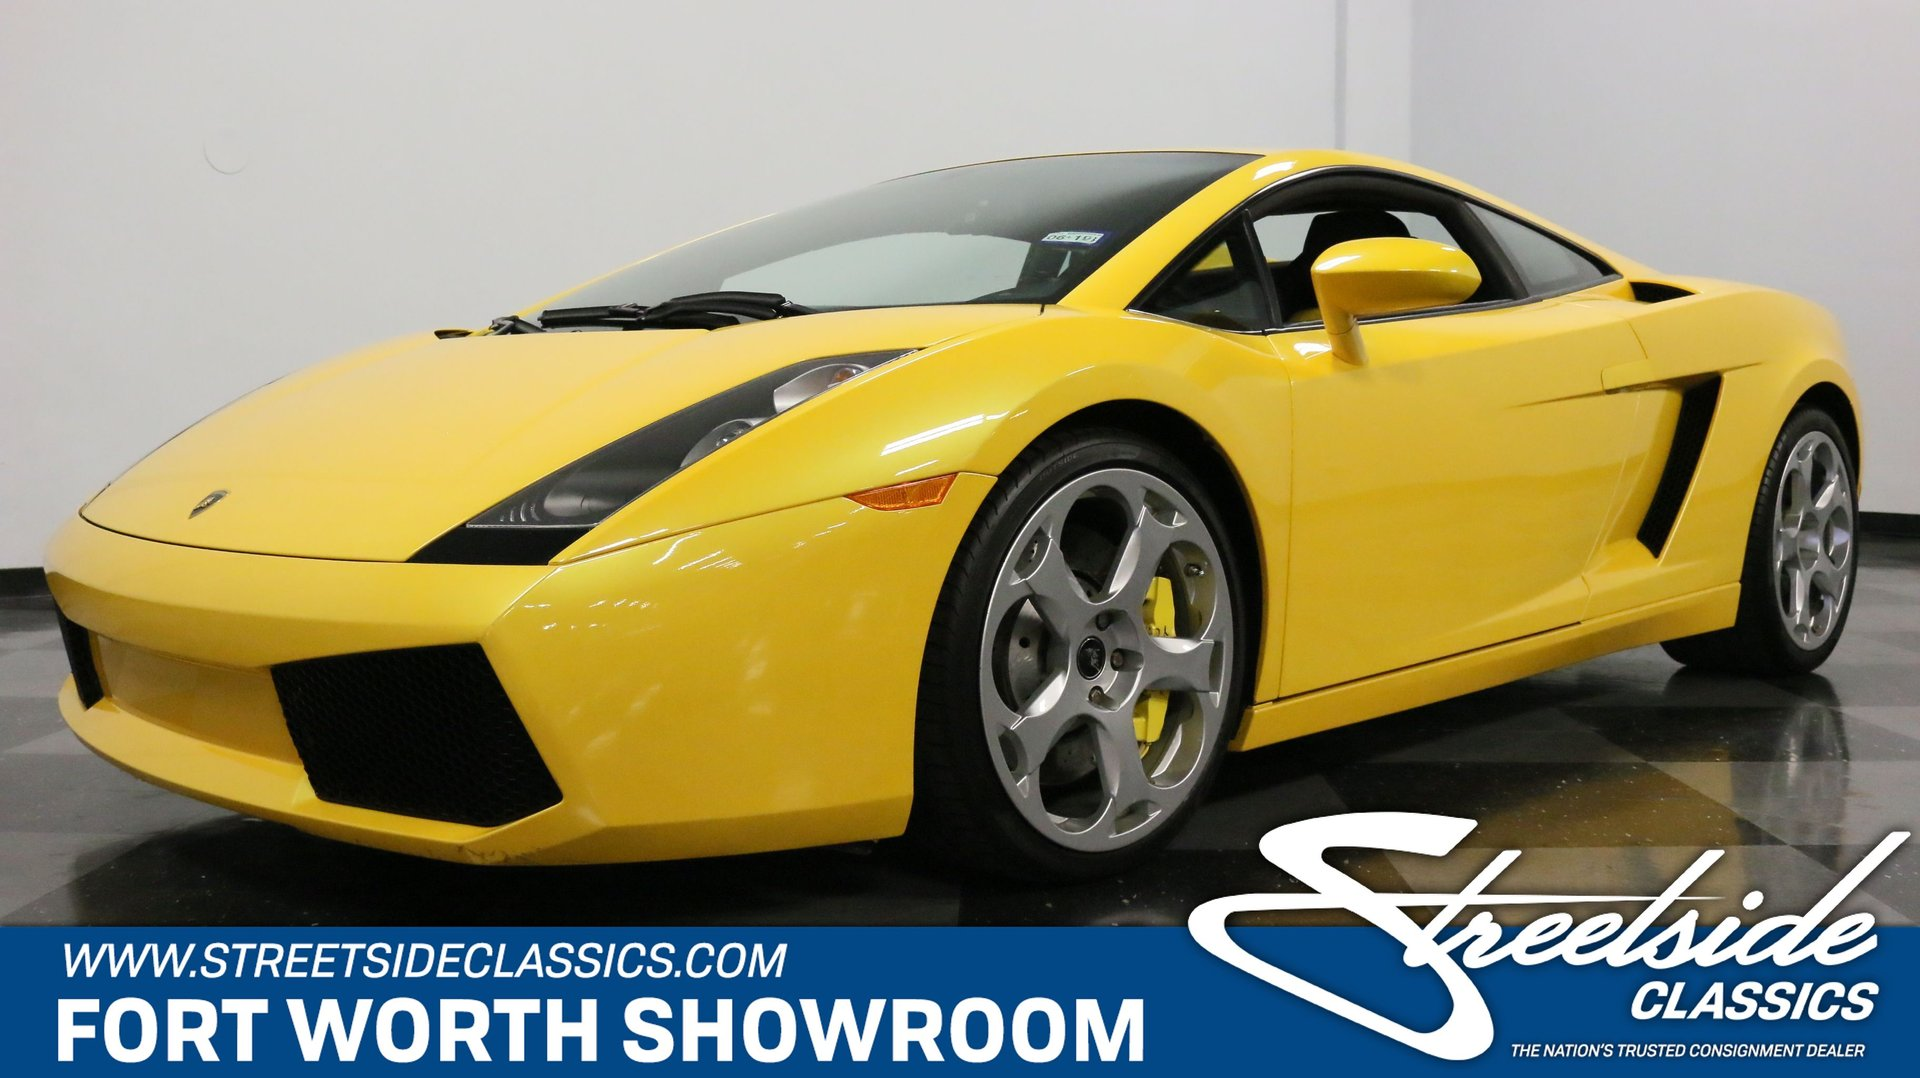 2004 Lamborghini Gallardo Coupe Awd For Sale 163265 Motorious